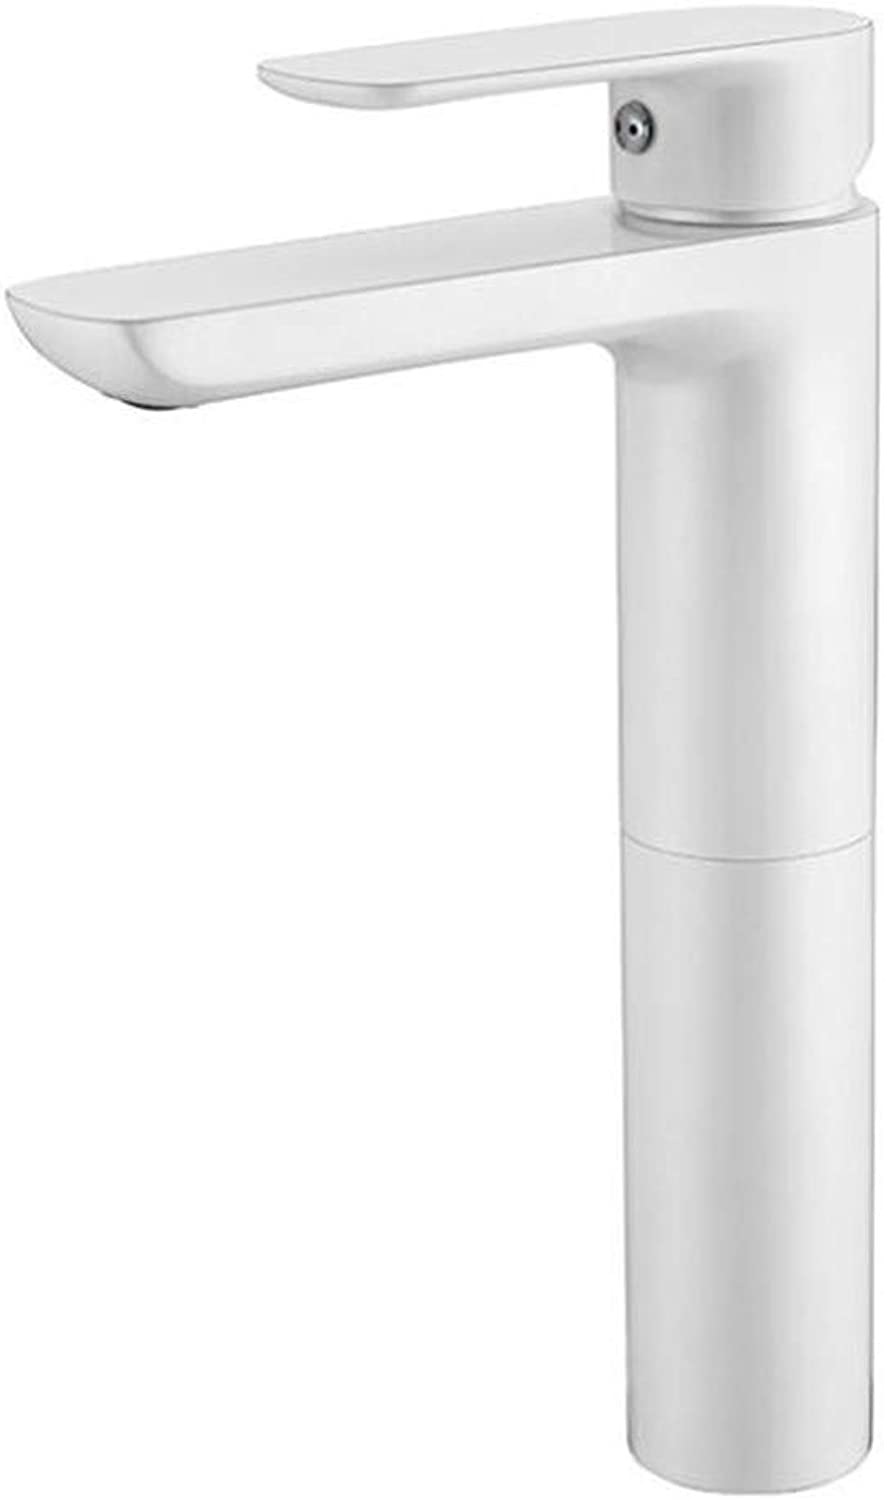 Taps Mixer?Swivel?Faucet Sink Washing Basin Faucet Mixing Hot and Cold Water